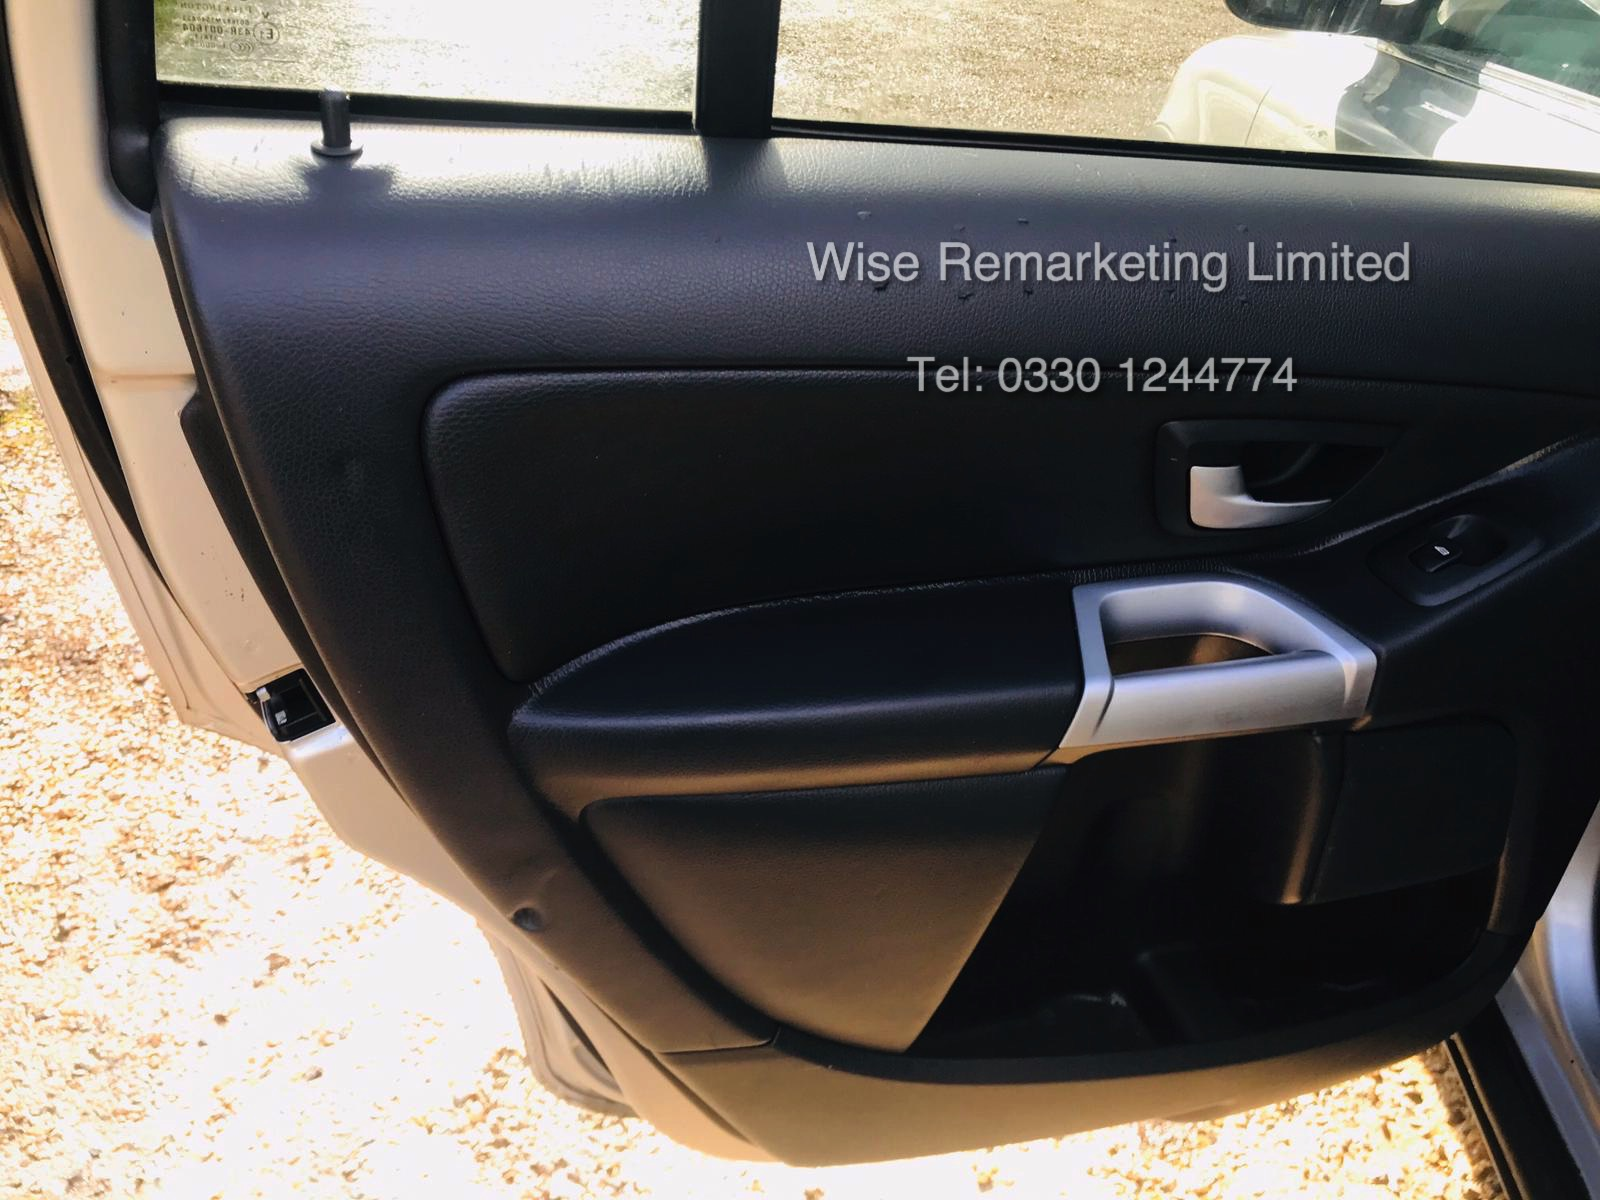 Volvo XC90 2.4 D5 Special Equipment Geartronic - 2006 06 Reg - Service History - 7 Seats - Sat Nav - Image 14 of 27